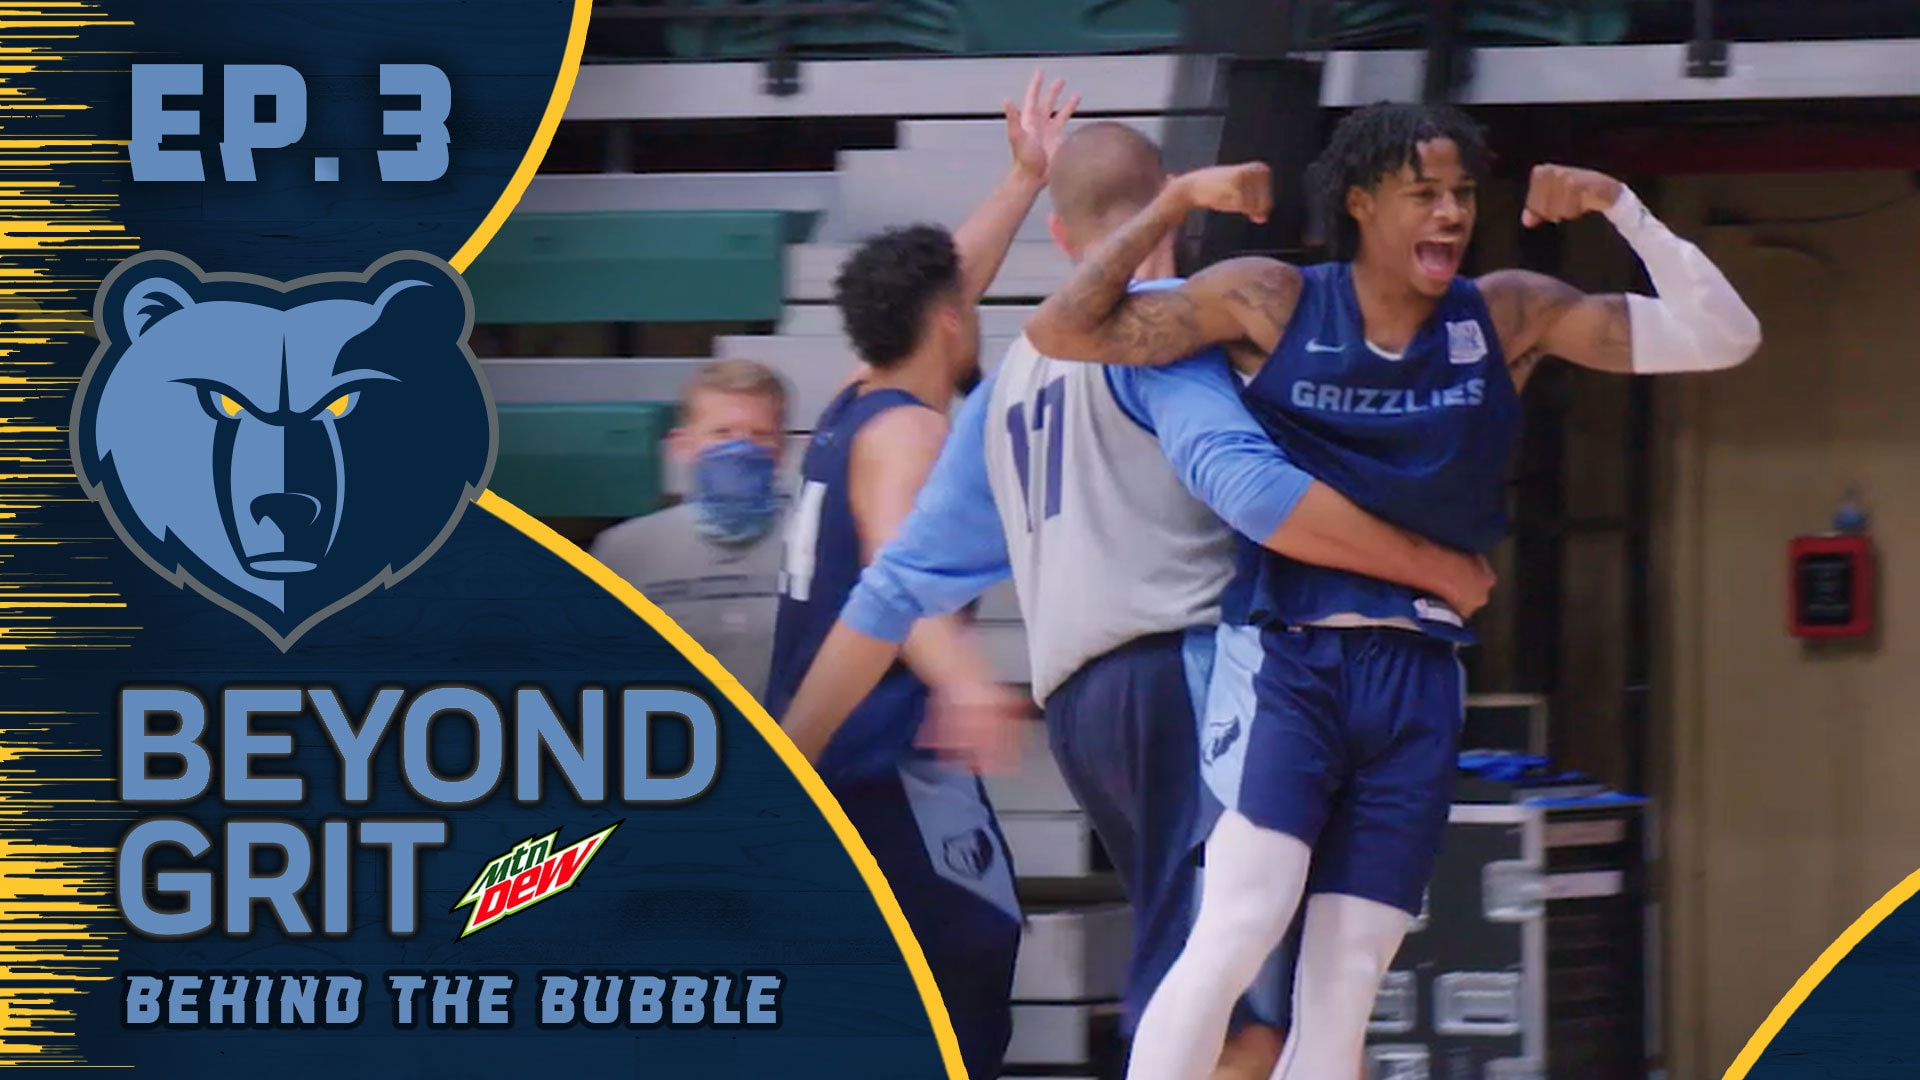 Beyond Grit: Behind the Bubble - Episode 3